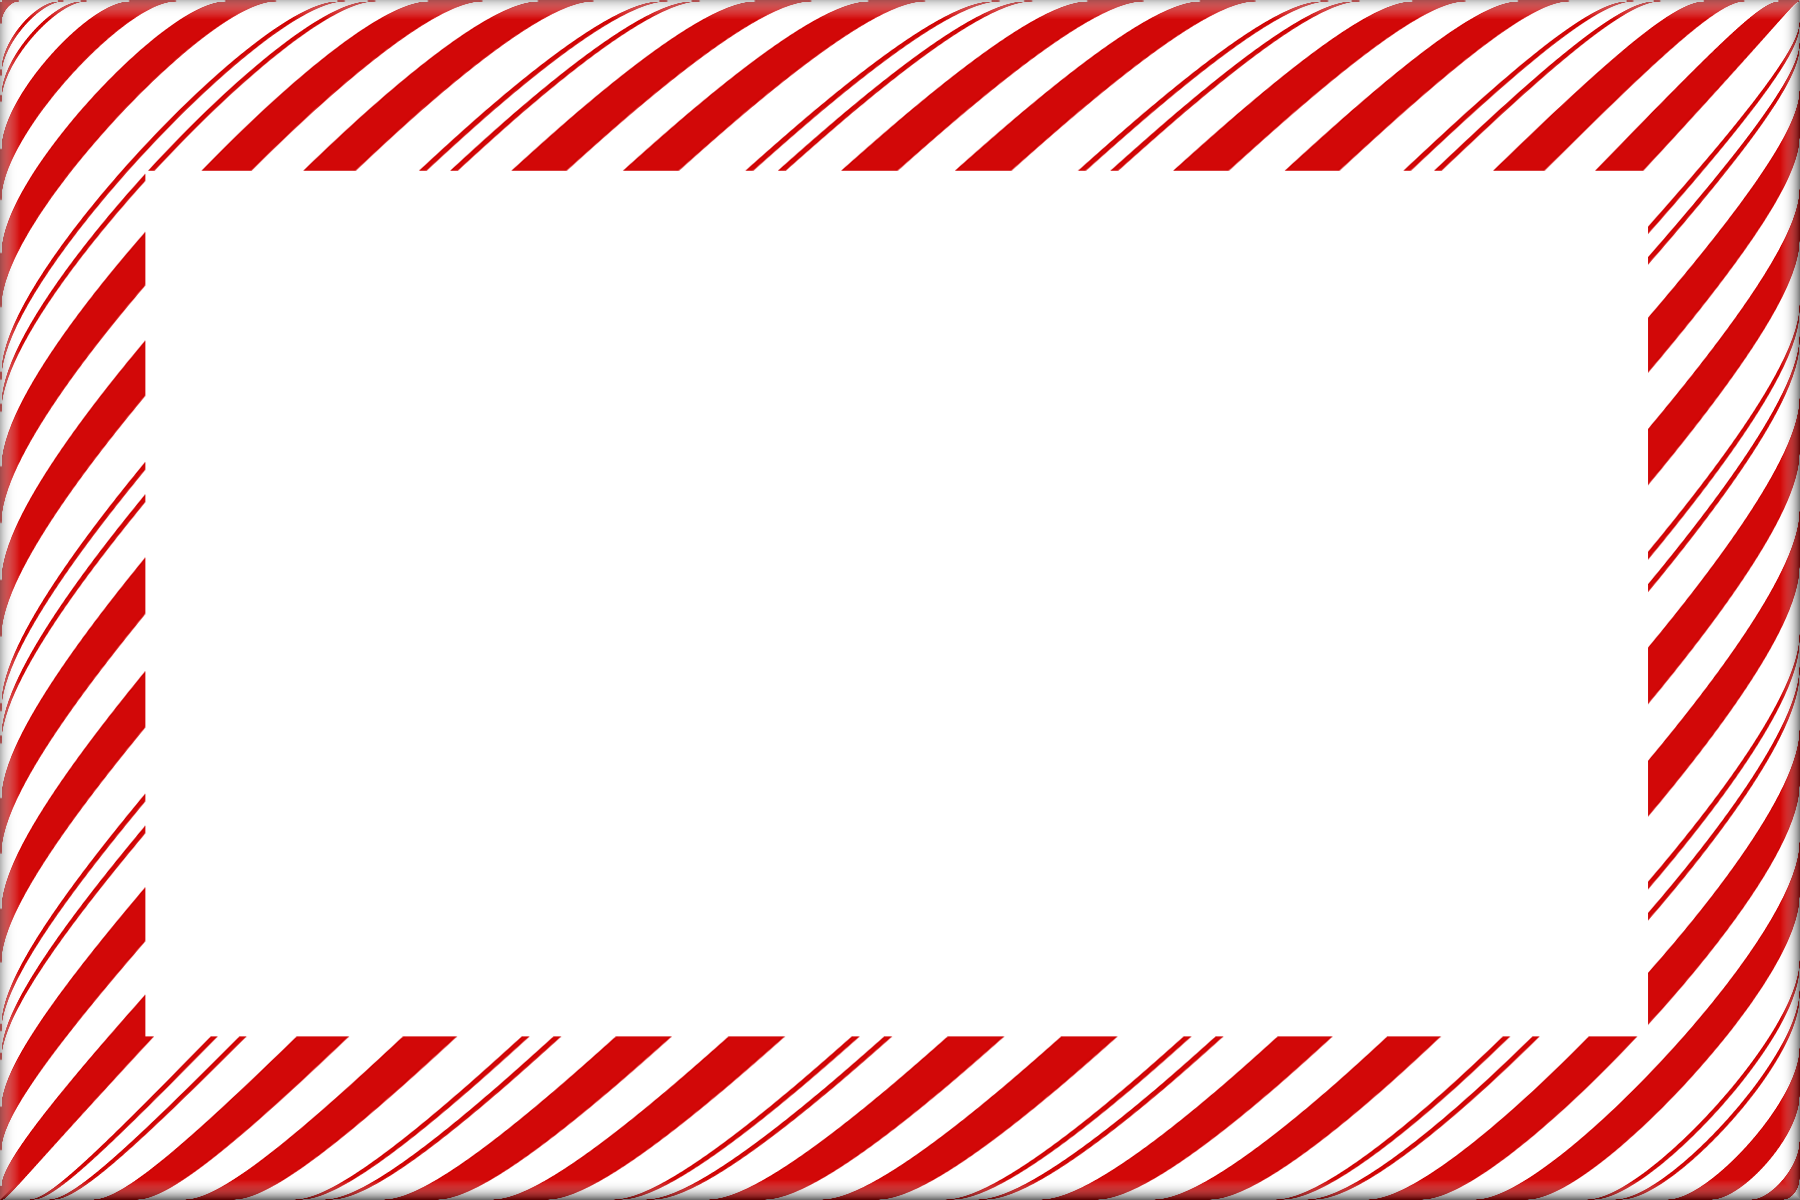 19 Christmas Borders Free Graphic Library Huge Freebie.